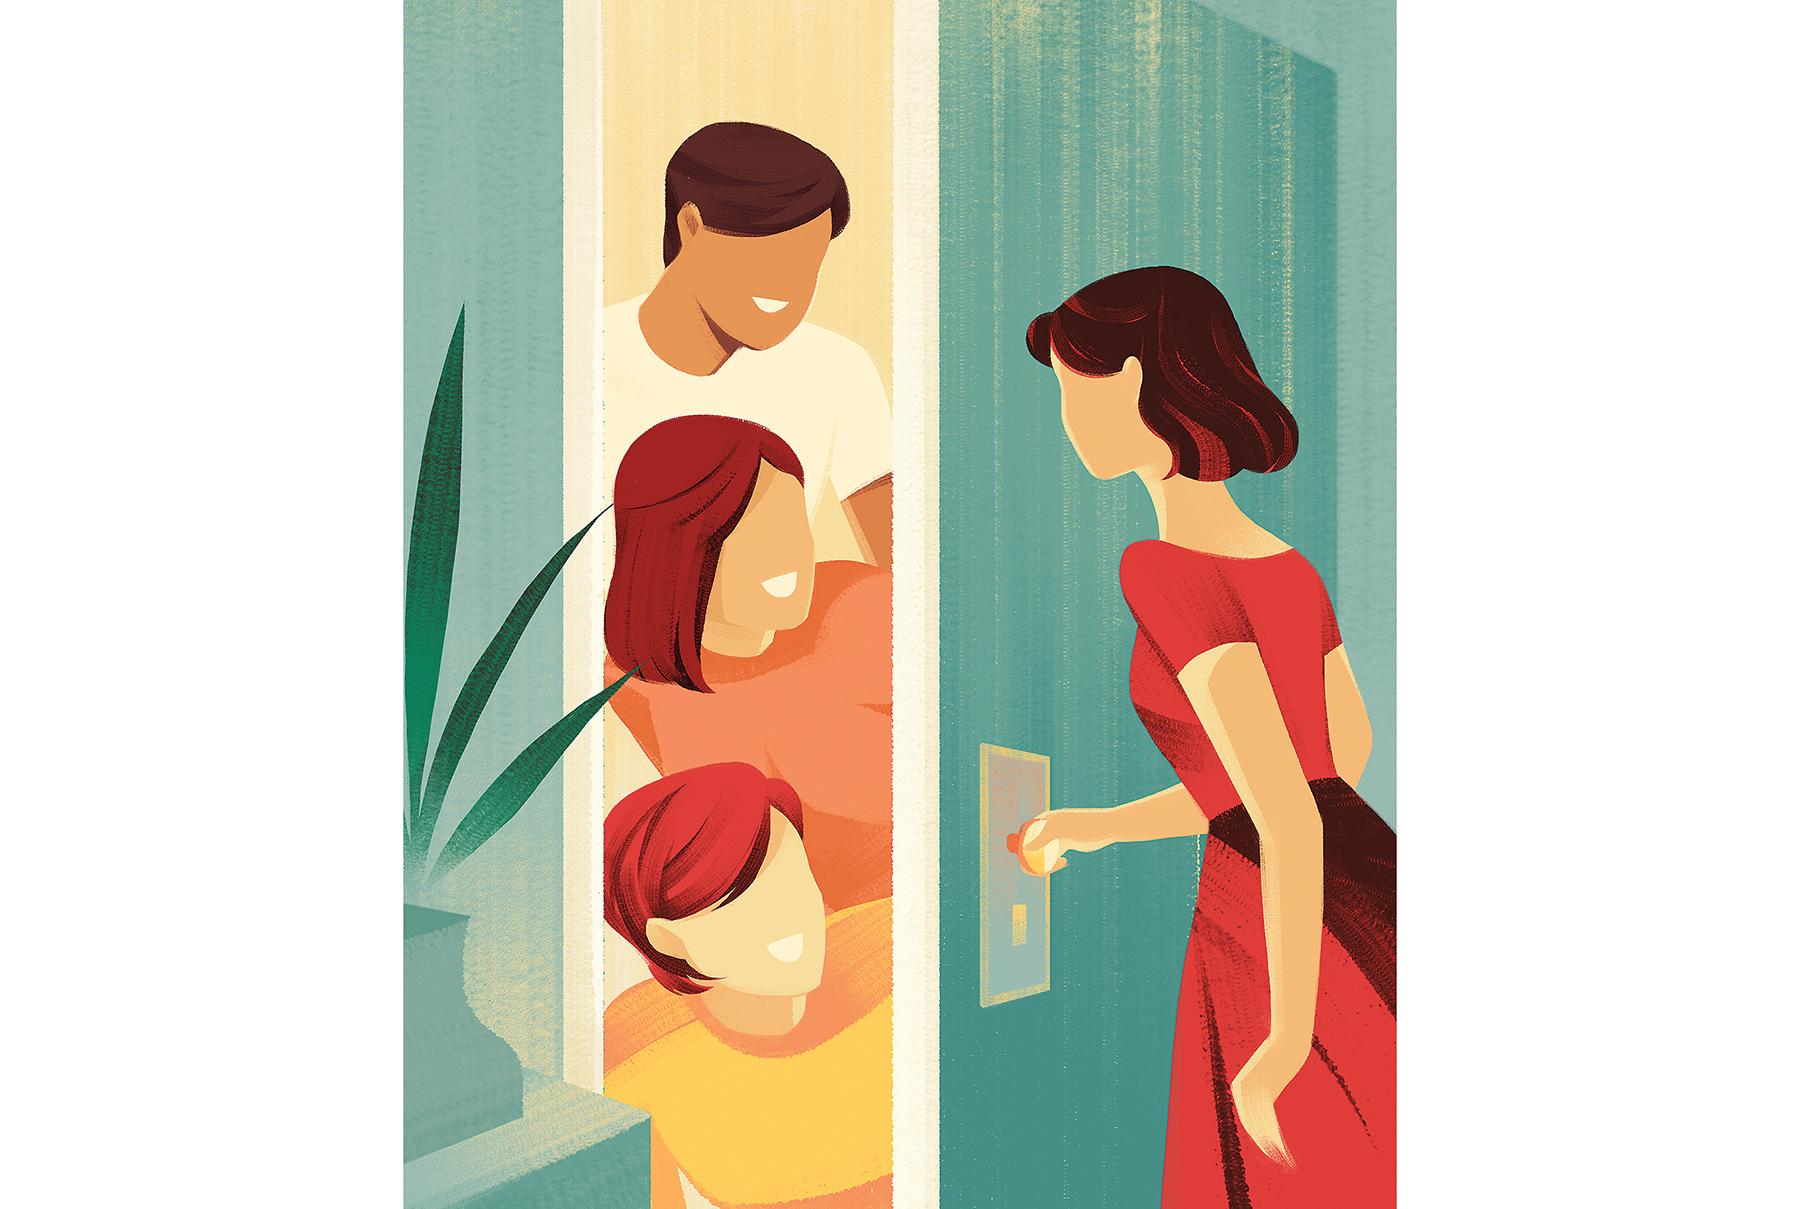 Illustration: woman opening the door to 3 adult siblings